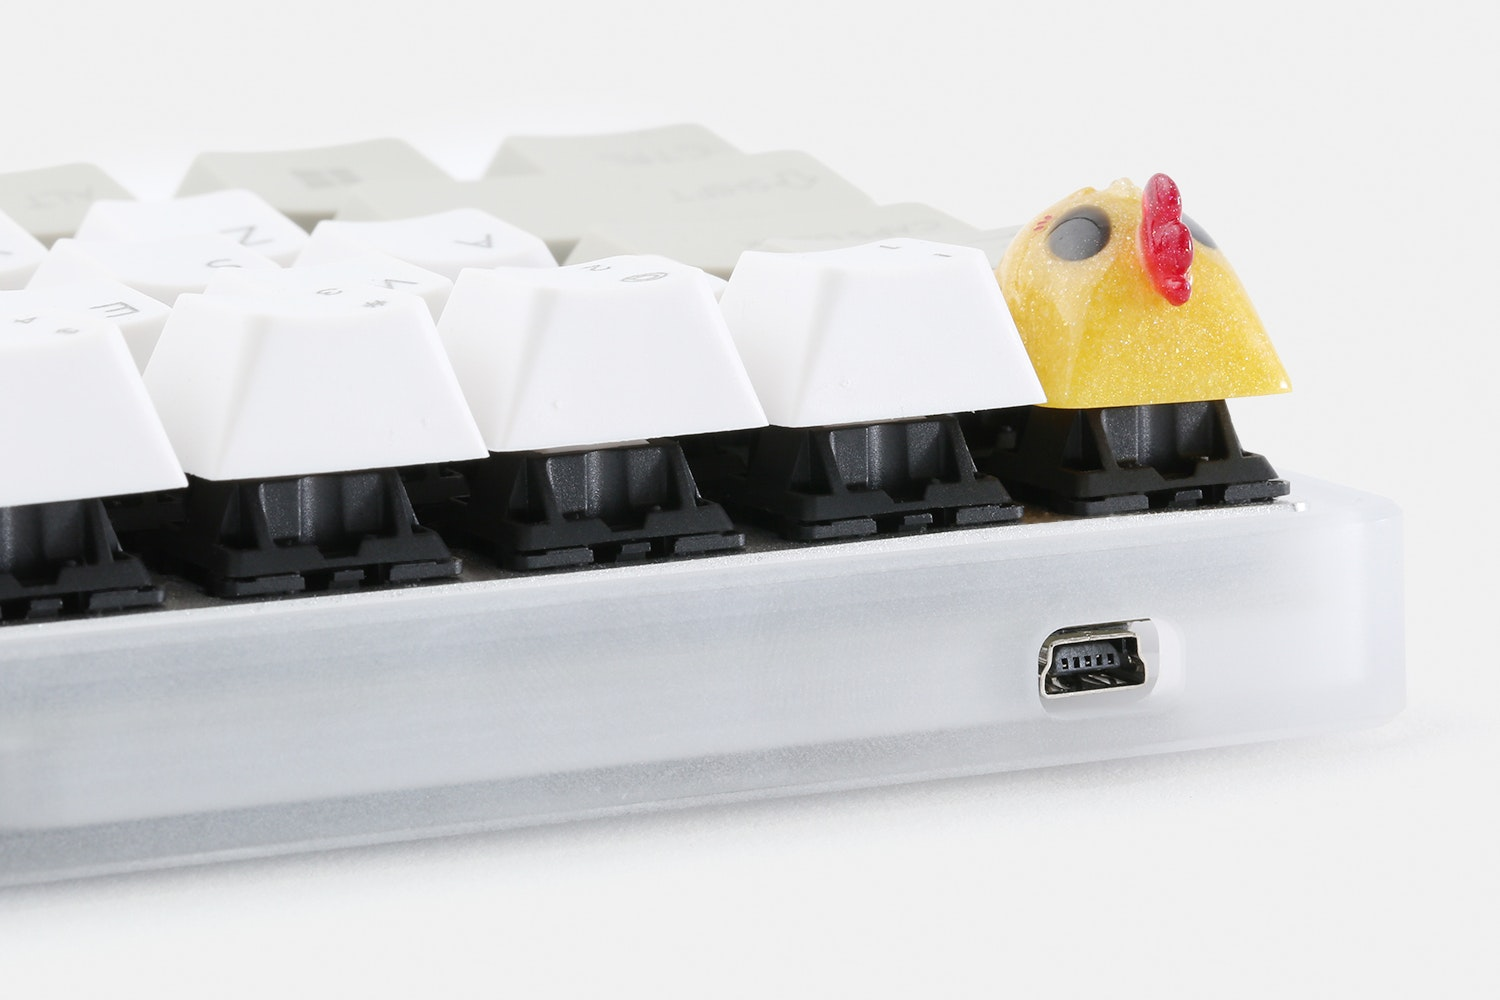 60% Frosted Acrylic Mechanical Keyboard Case